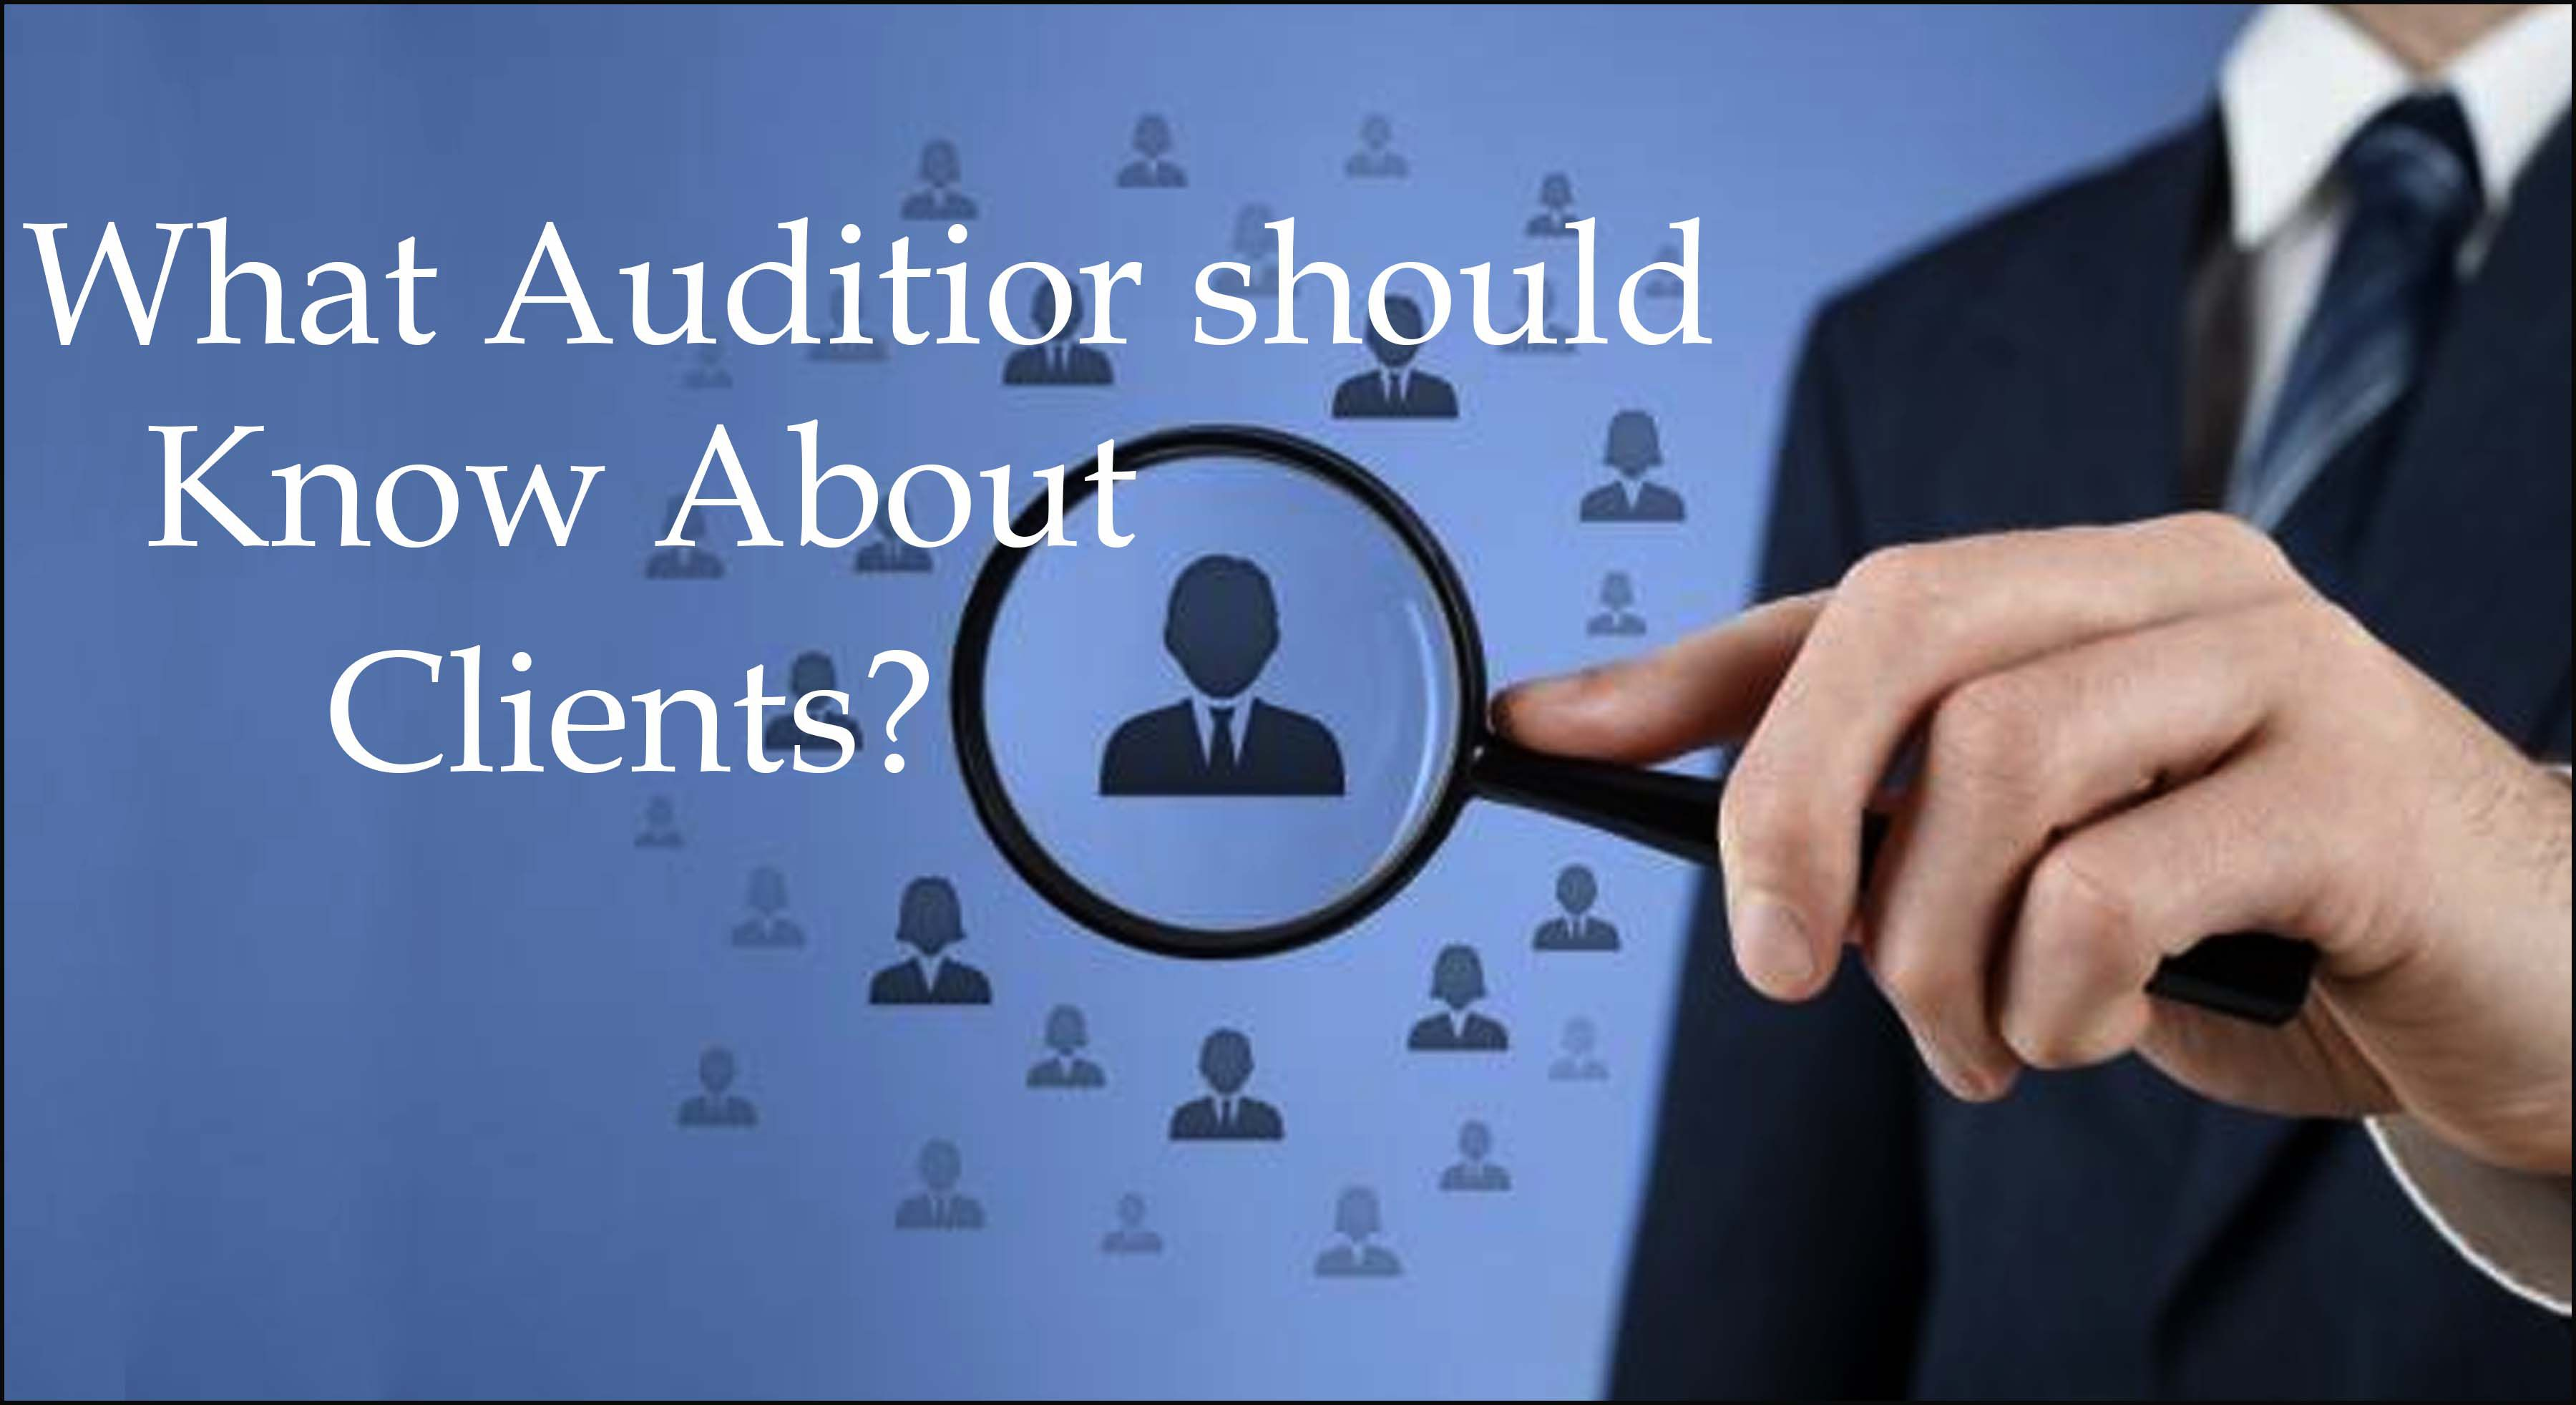 What Auditor should know about client?